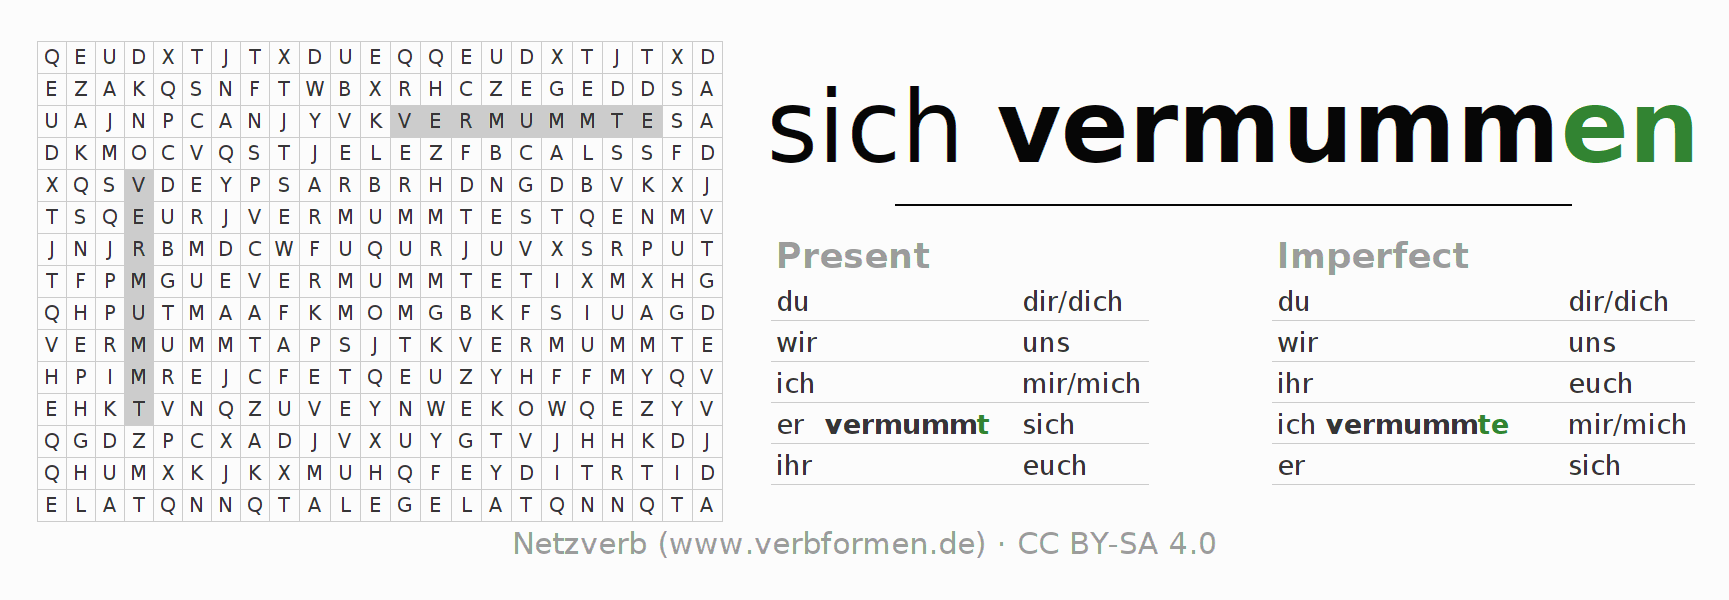 Word search puzzle for the conjugation of the verb sich vermummen